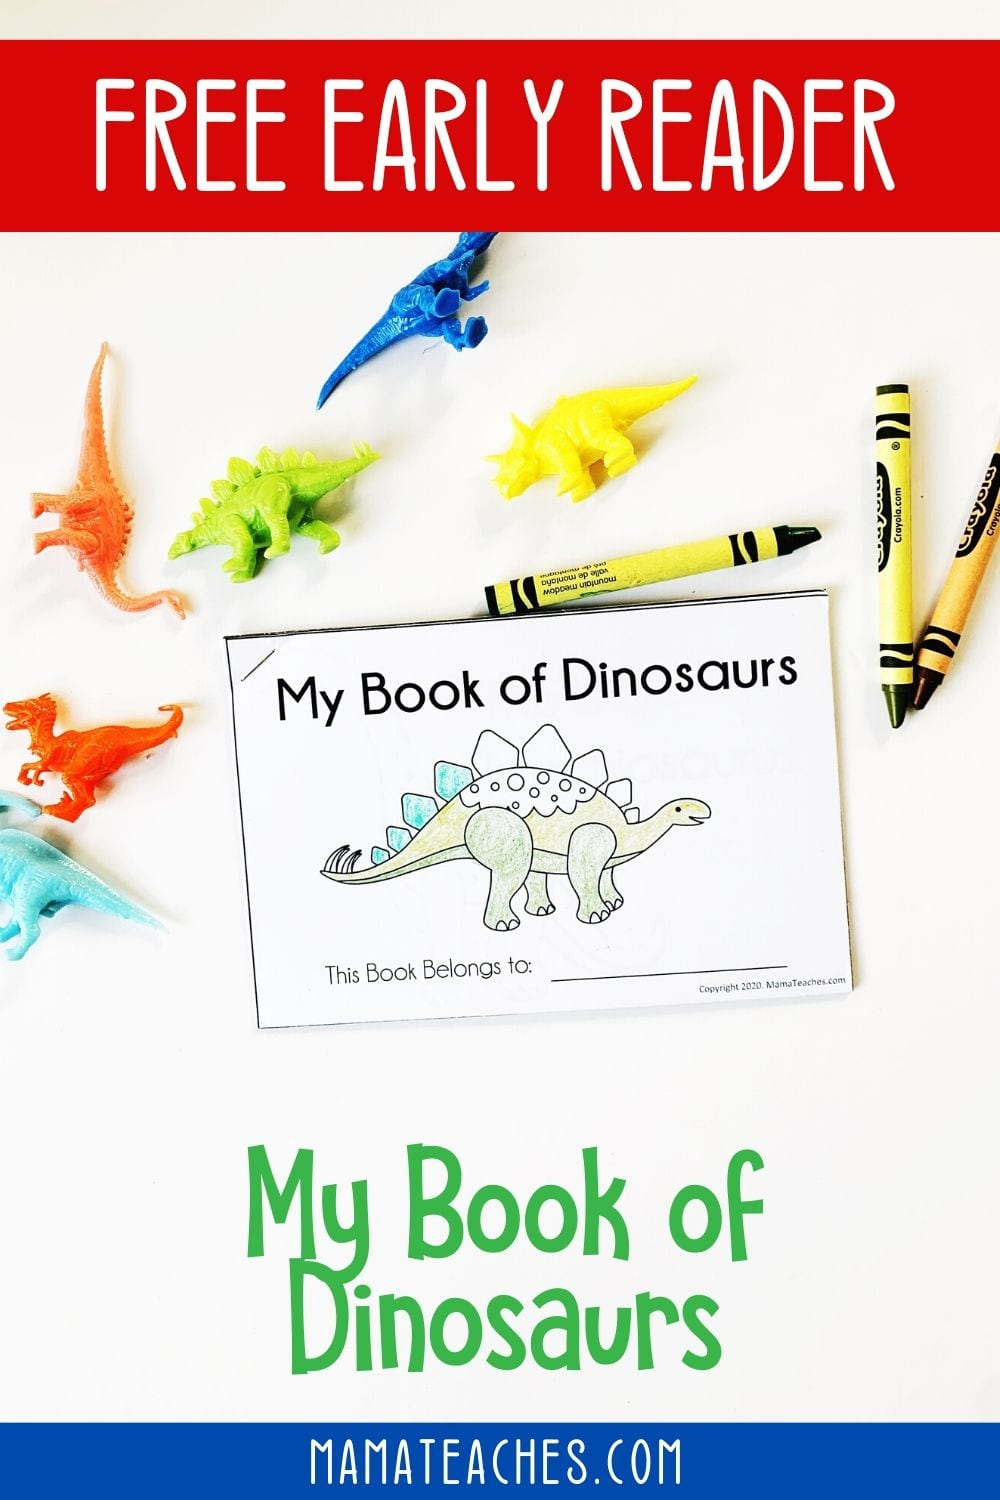 Free Preschool Early Reader - My Book of Dinosaurs - A Book of Dinosaurs for Preschoolers